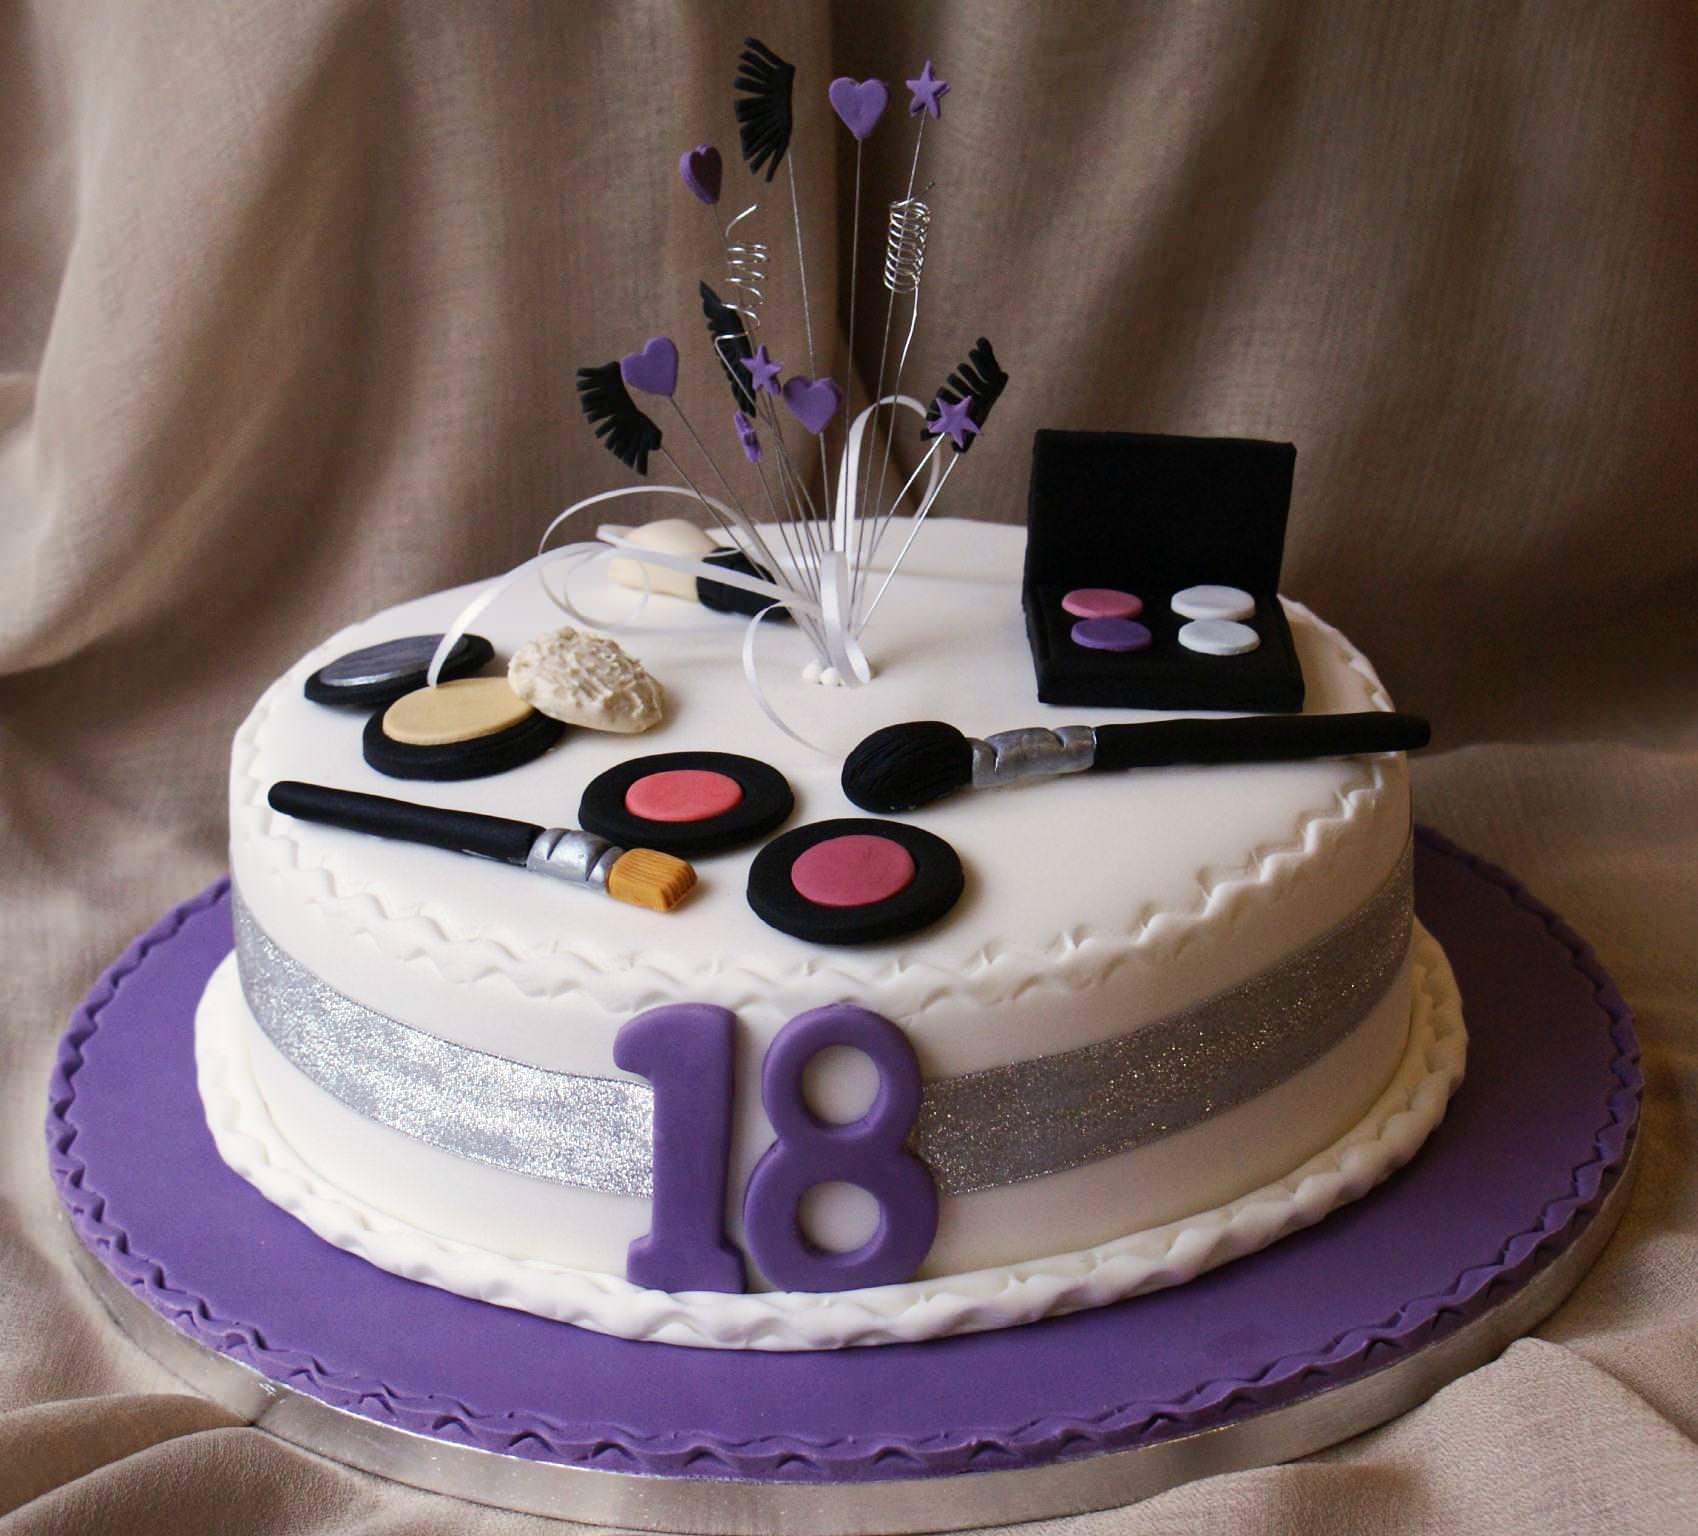 18Th Birthday Cake Designs 18th Birthday Cakes Both For Boys And Girls Protoblogr Design